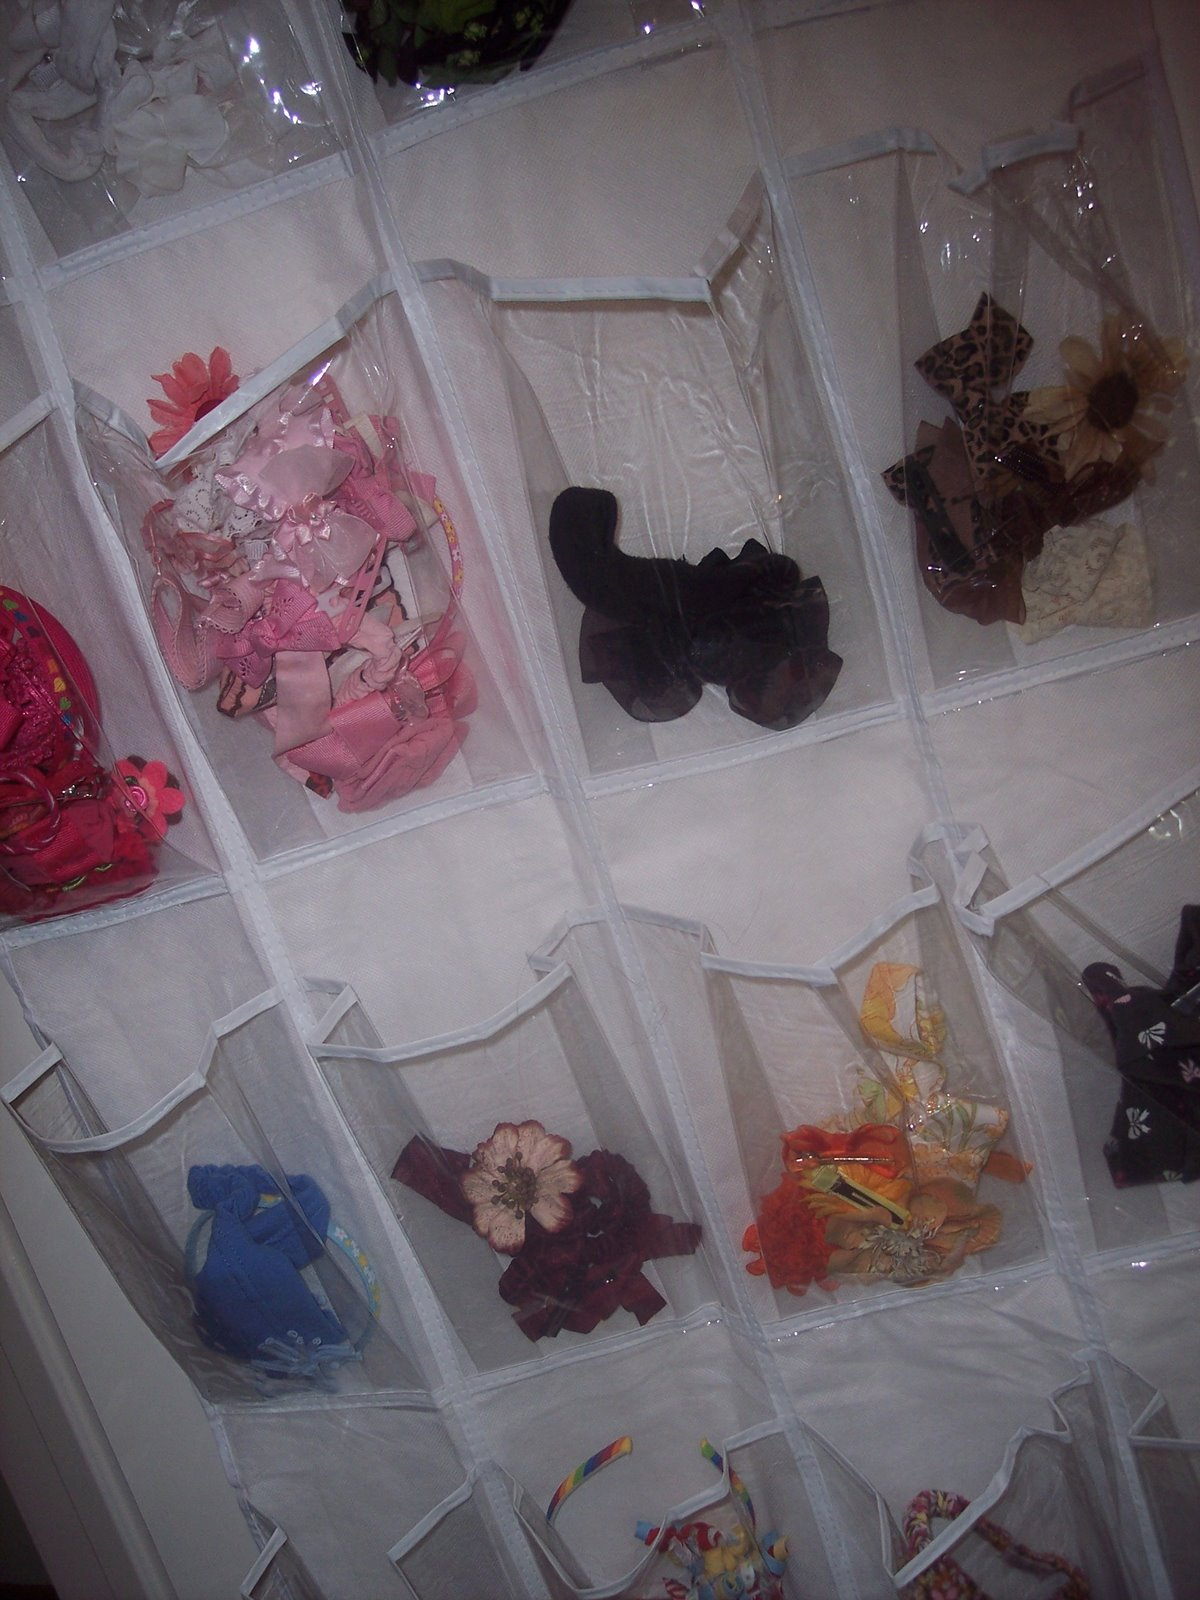 How to organize hair bows - Even Better This Thing Was Like 8 Bucks Can T Beat That Now I Know What Colors I Need More Of What Colors We Have Etc Besides Organizing Hair Bows And